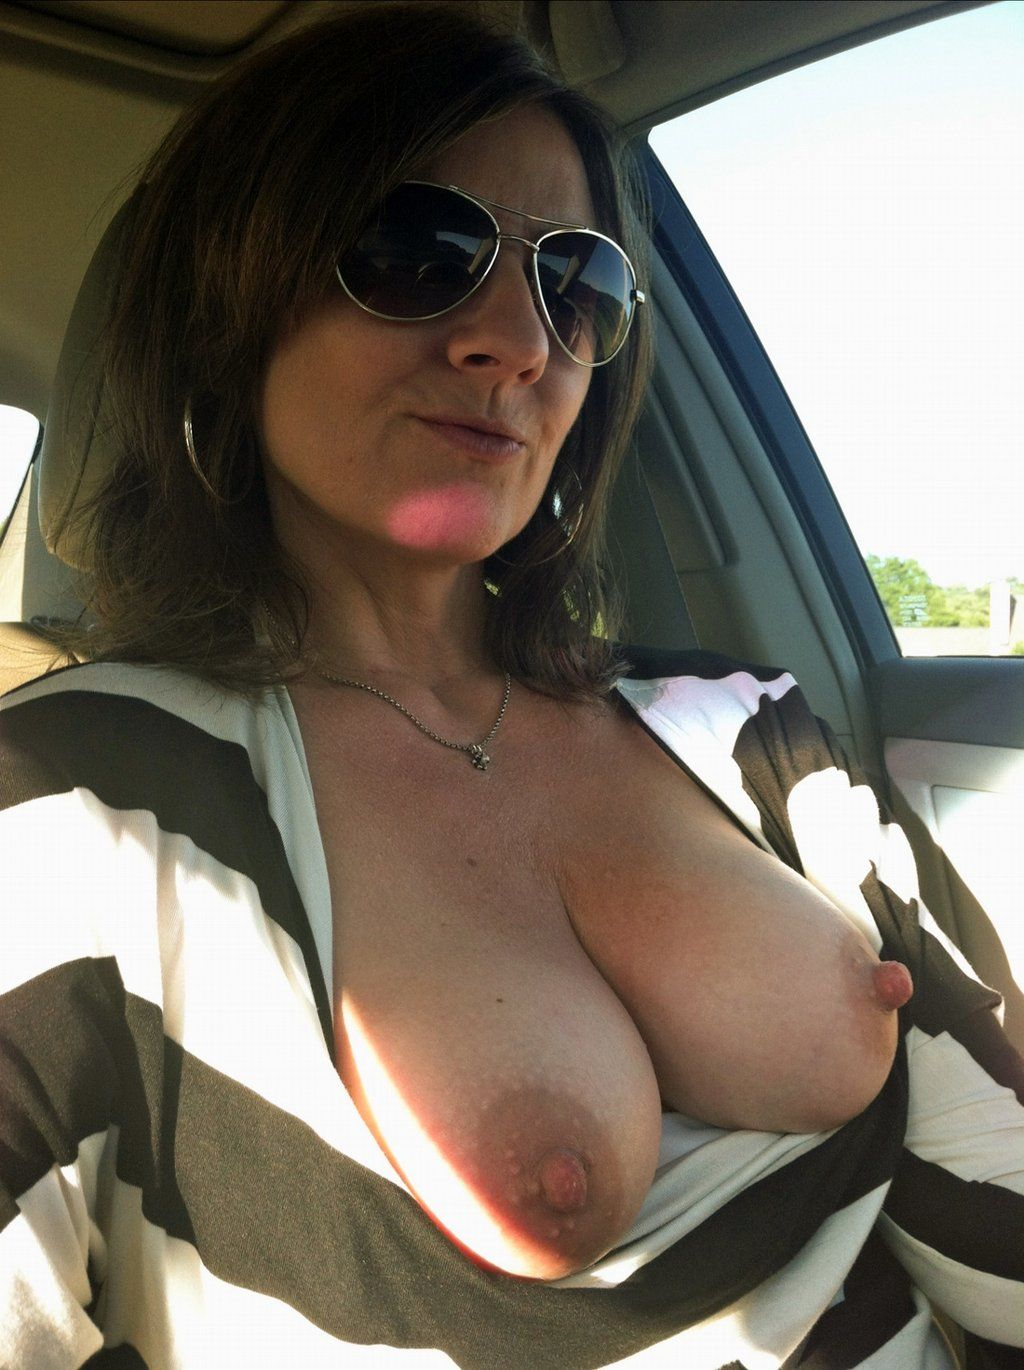 [Amateur MILF] Quite a distraction